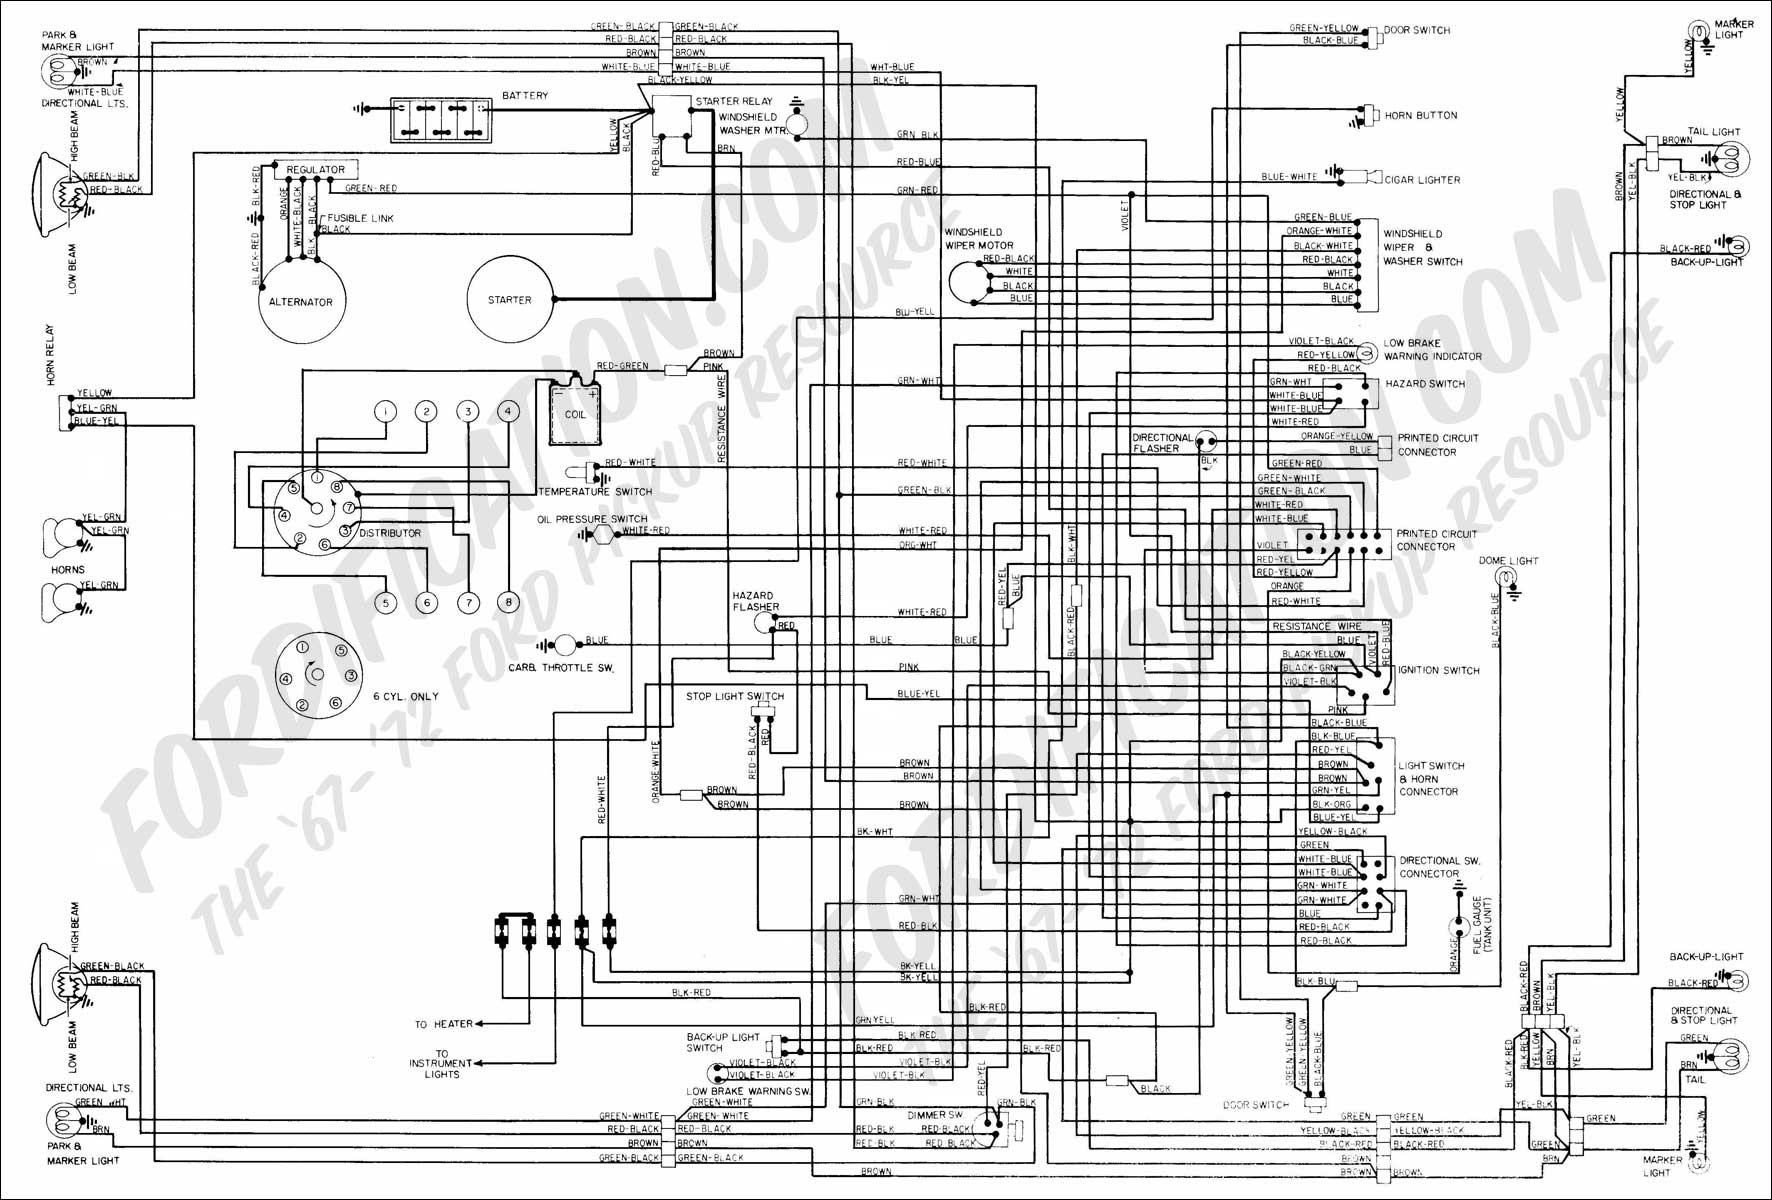 F800 Wiring Diagram | Wiring Diagram - Ford F150 Trailer Wiring Diagram